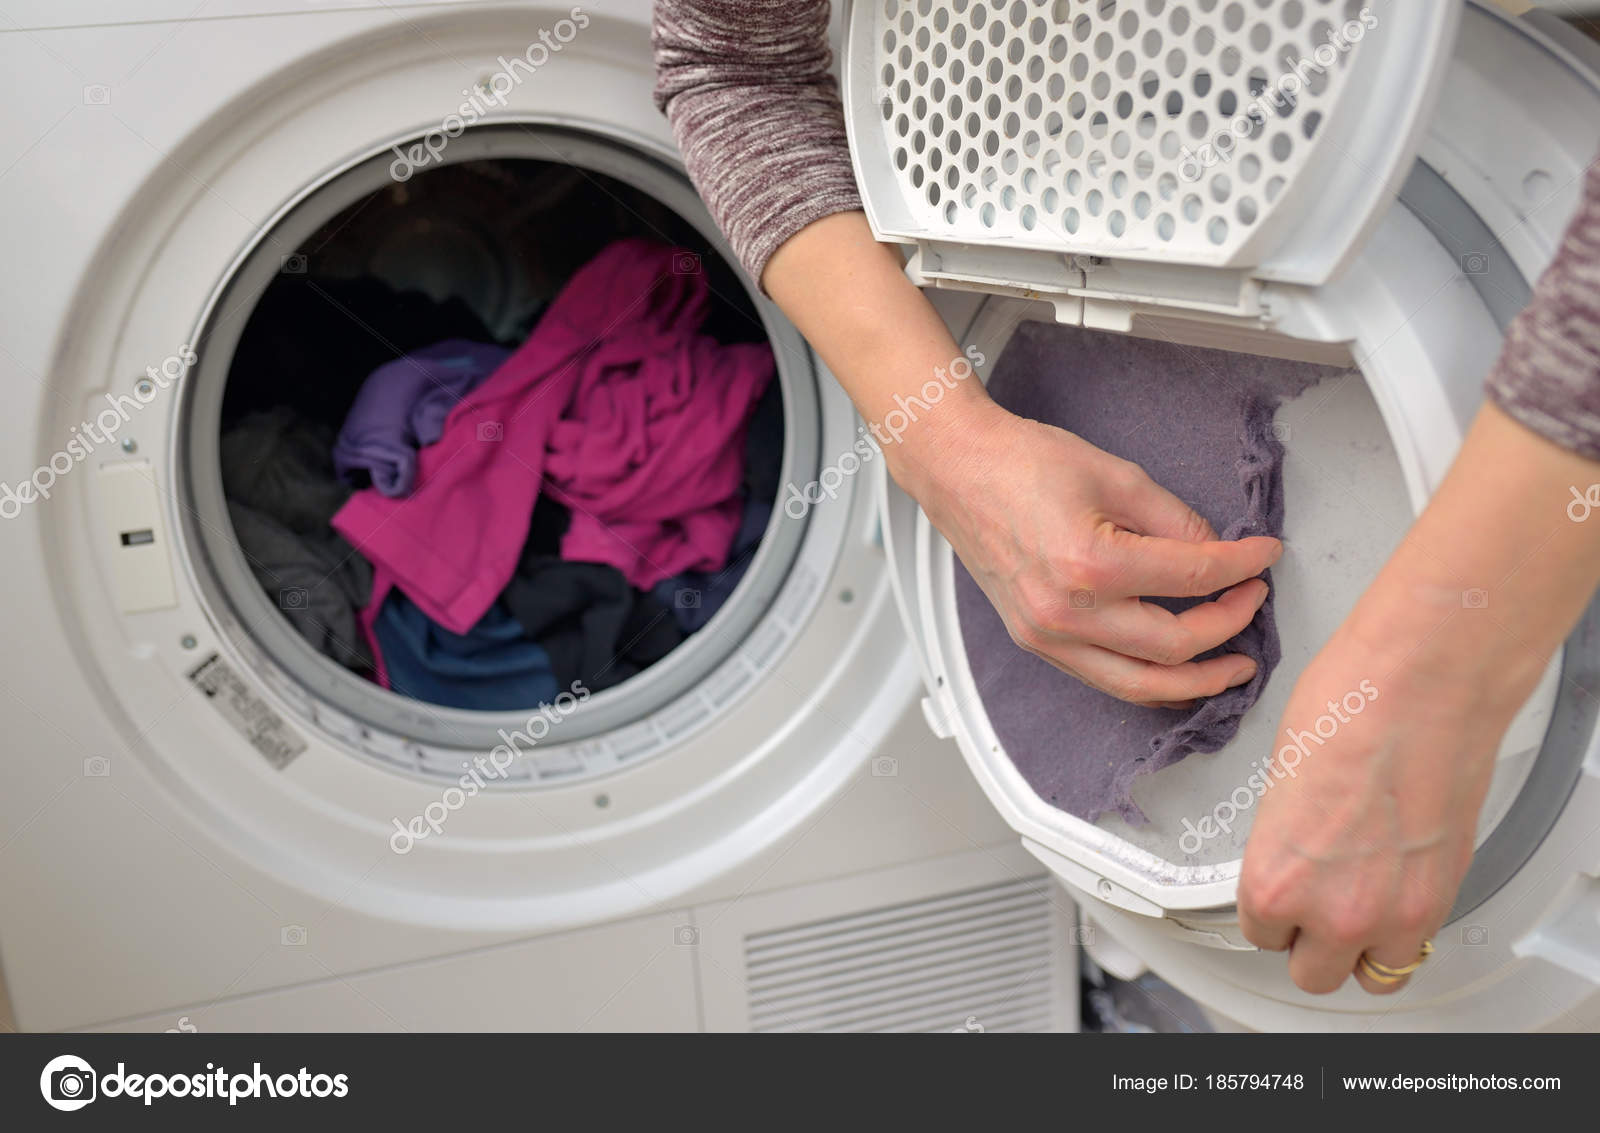 drop something in the dryer lint compartment - 1025×625